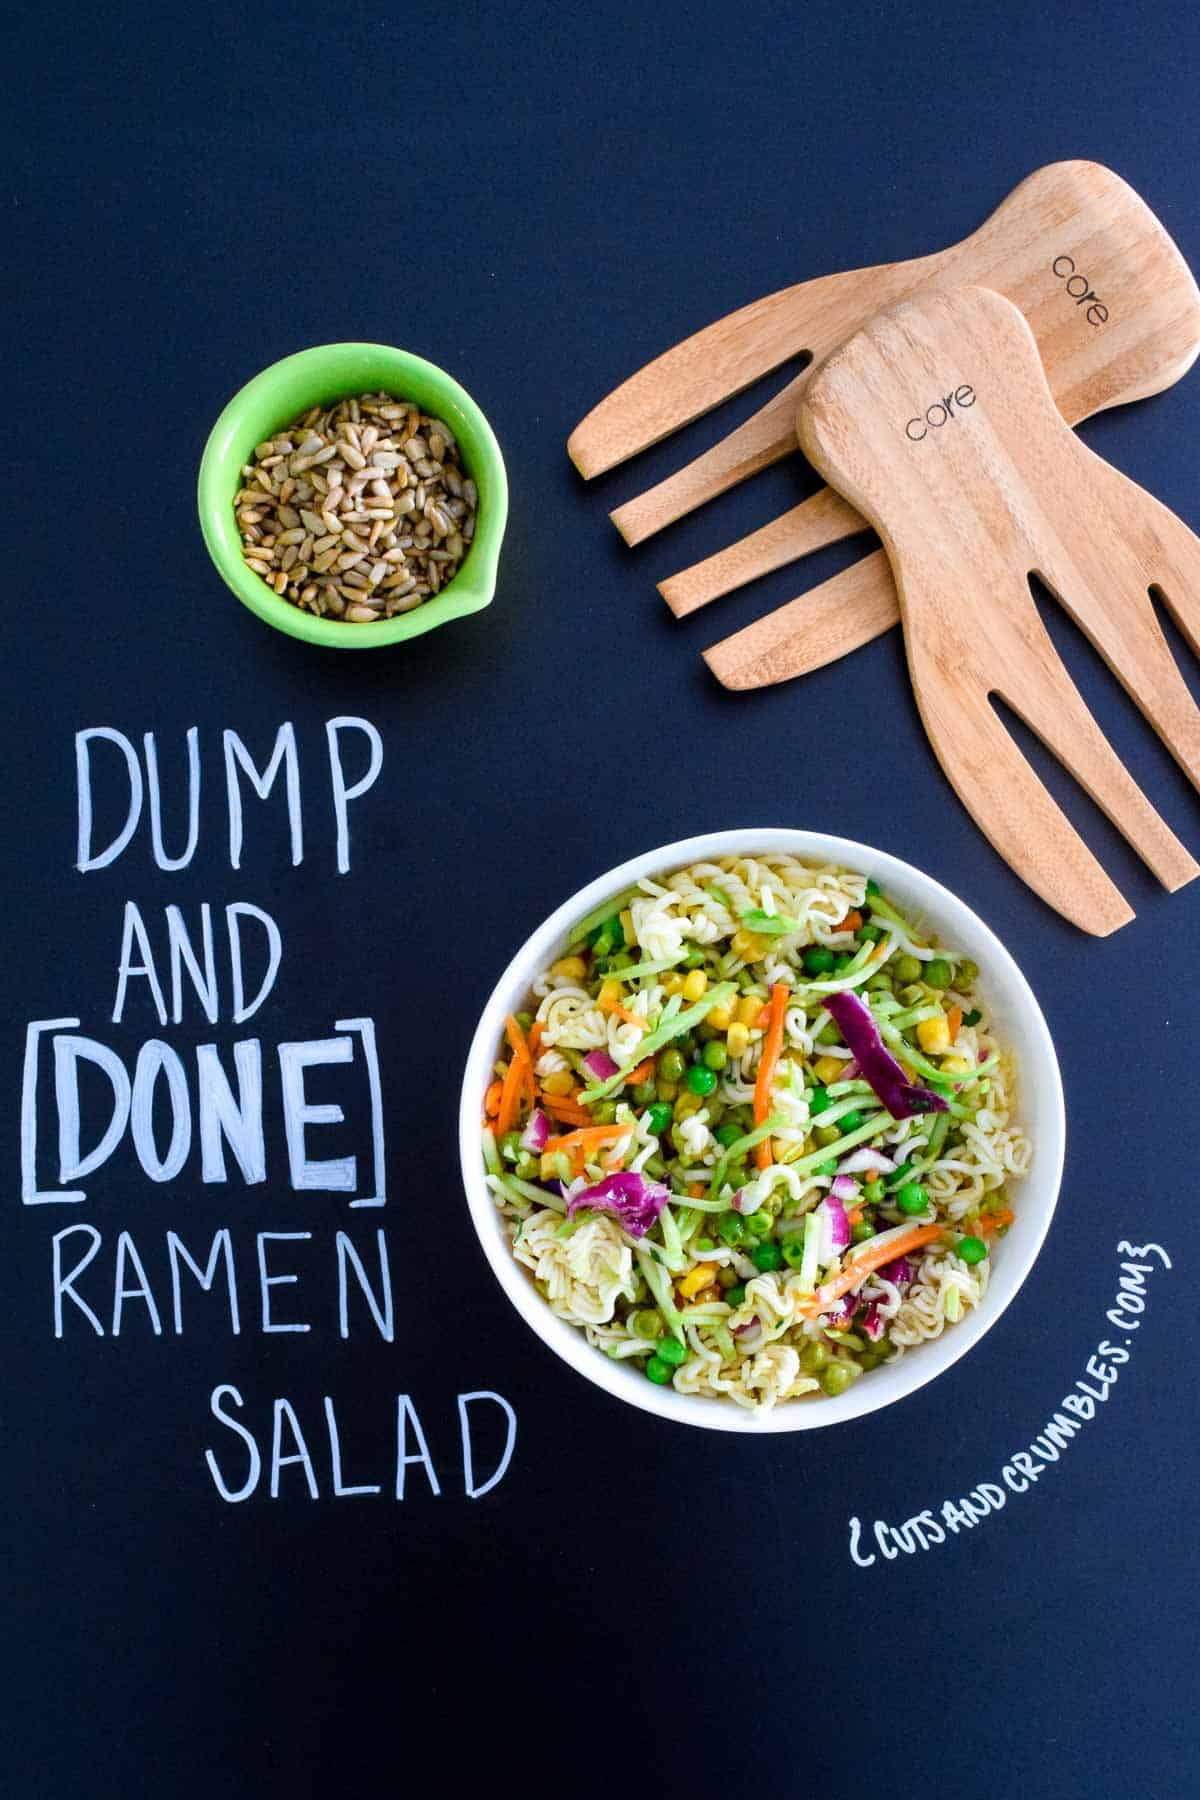 Dump and Done Ramen Salad